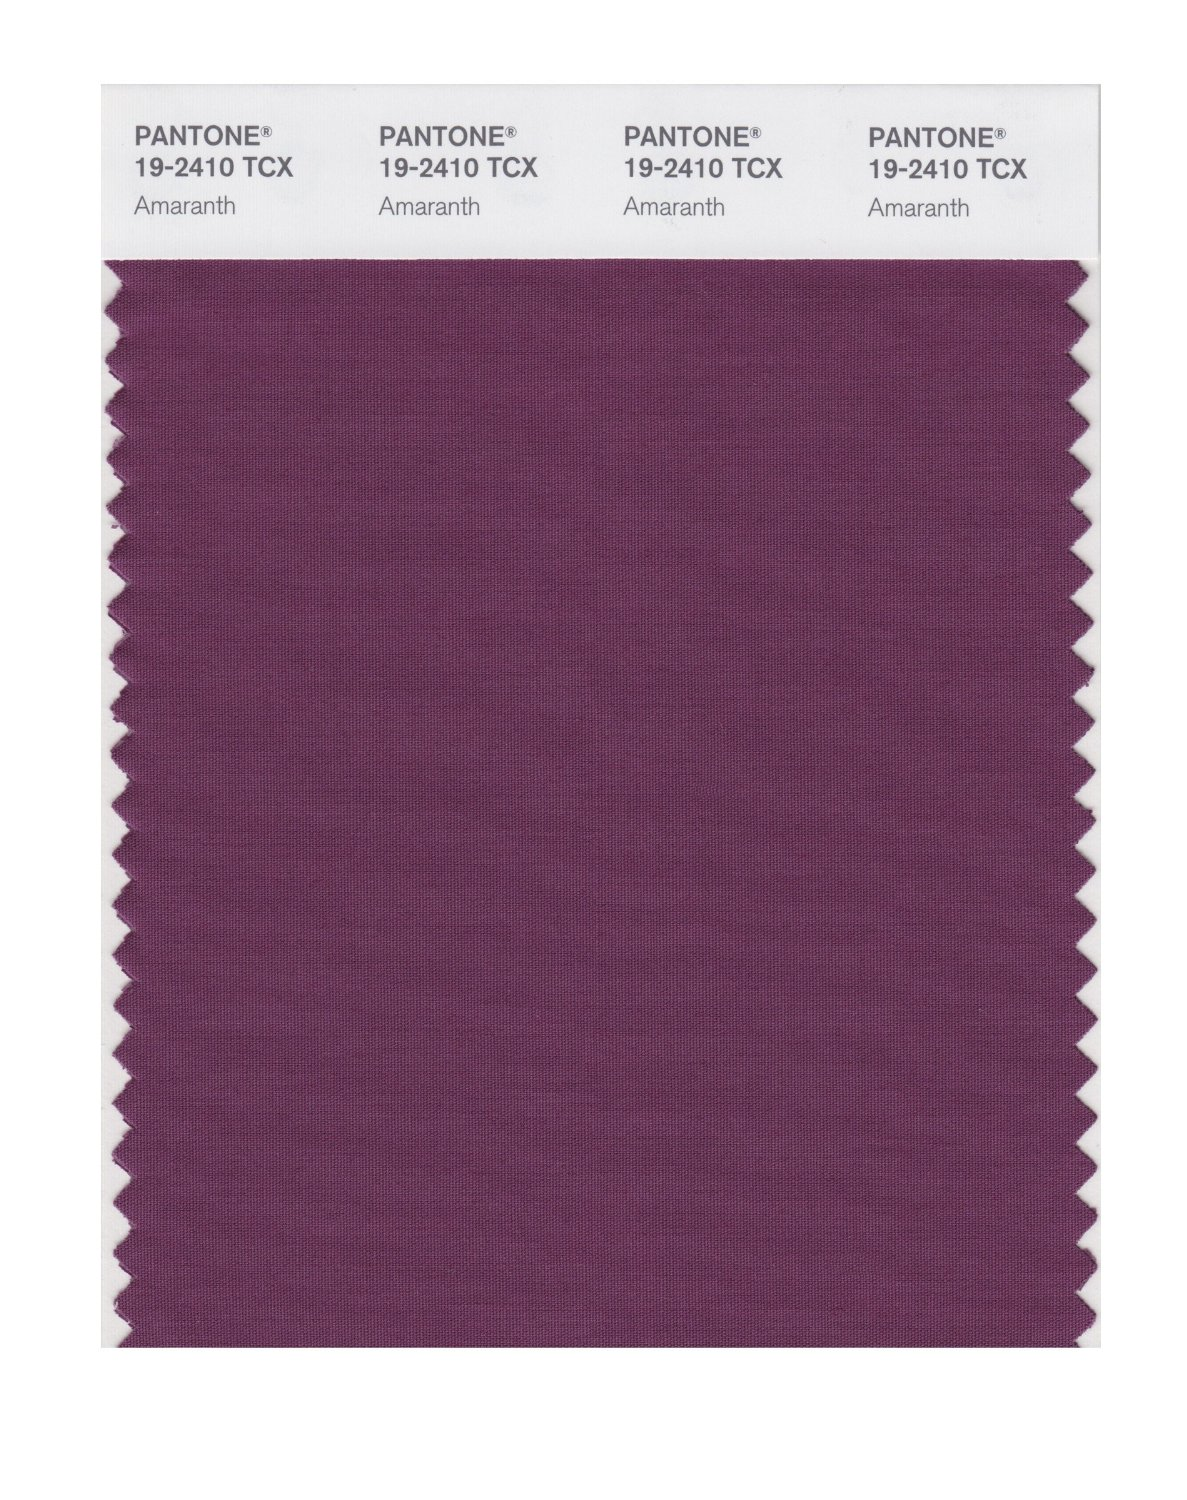 Pantone Smart Swatch 19-2410 Amaranth